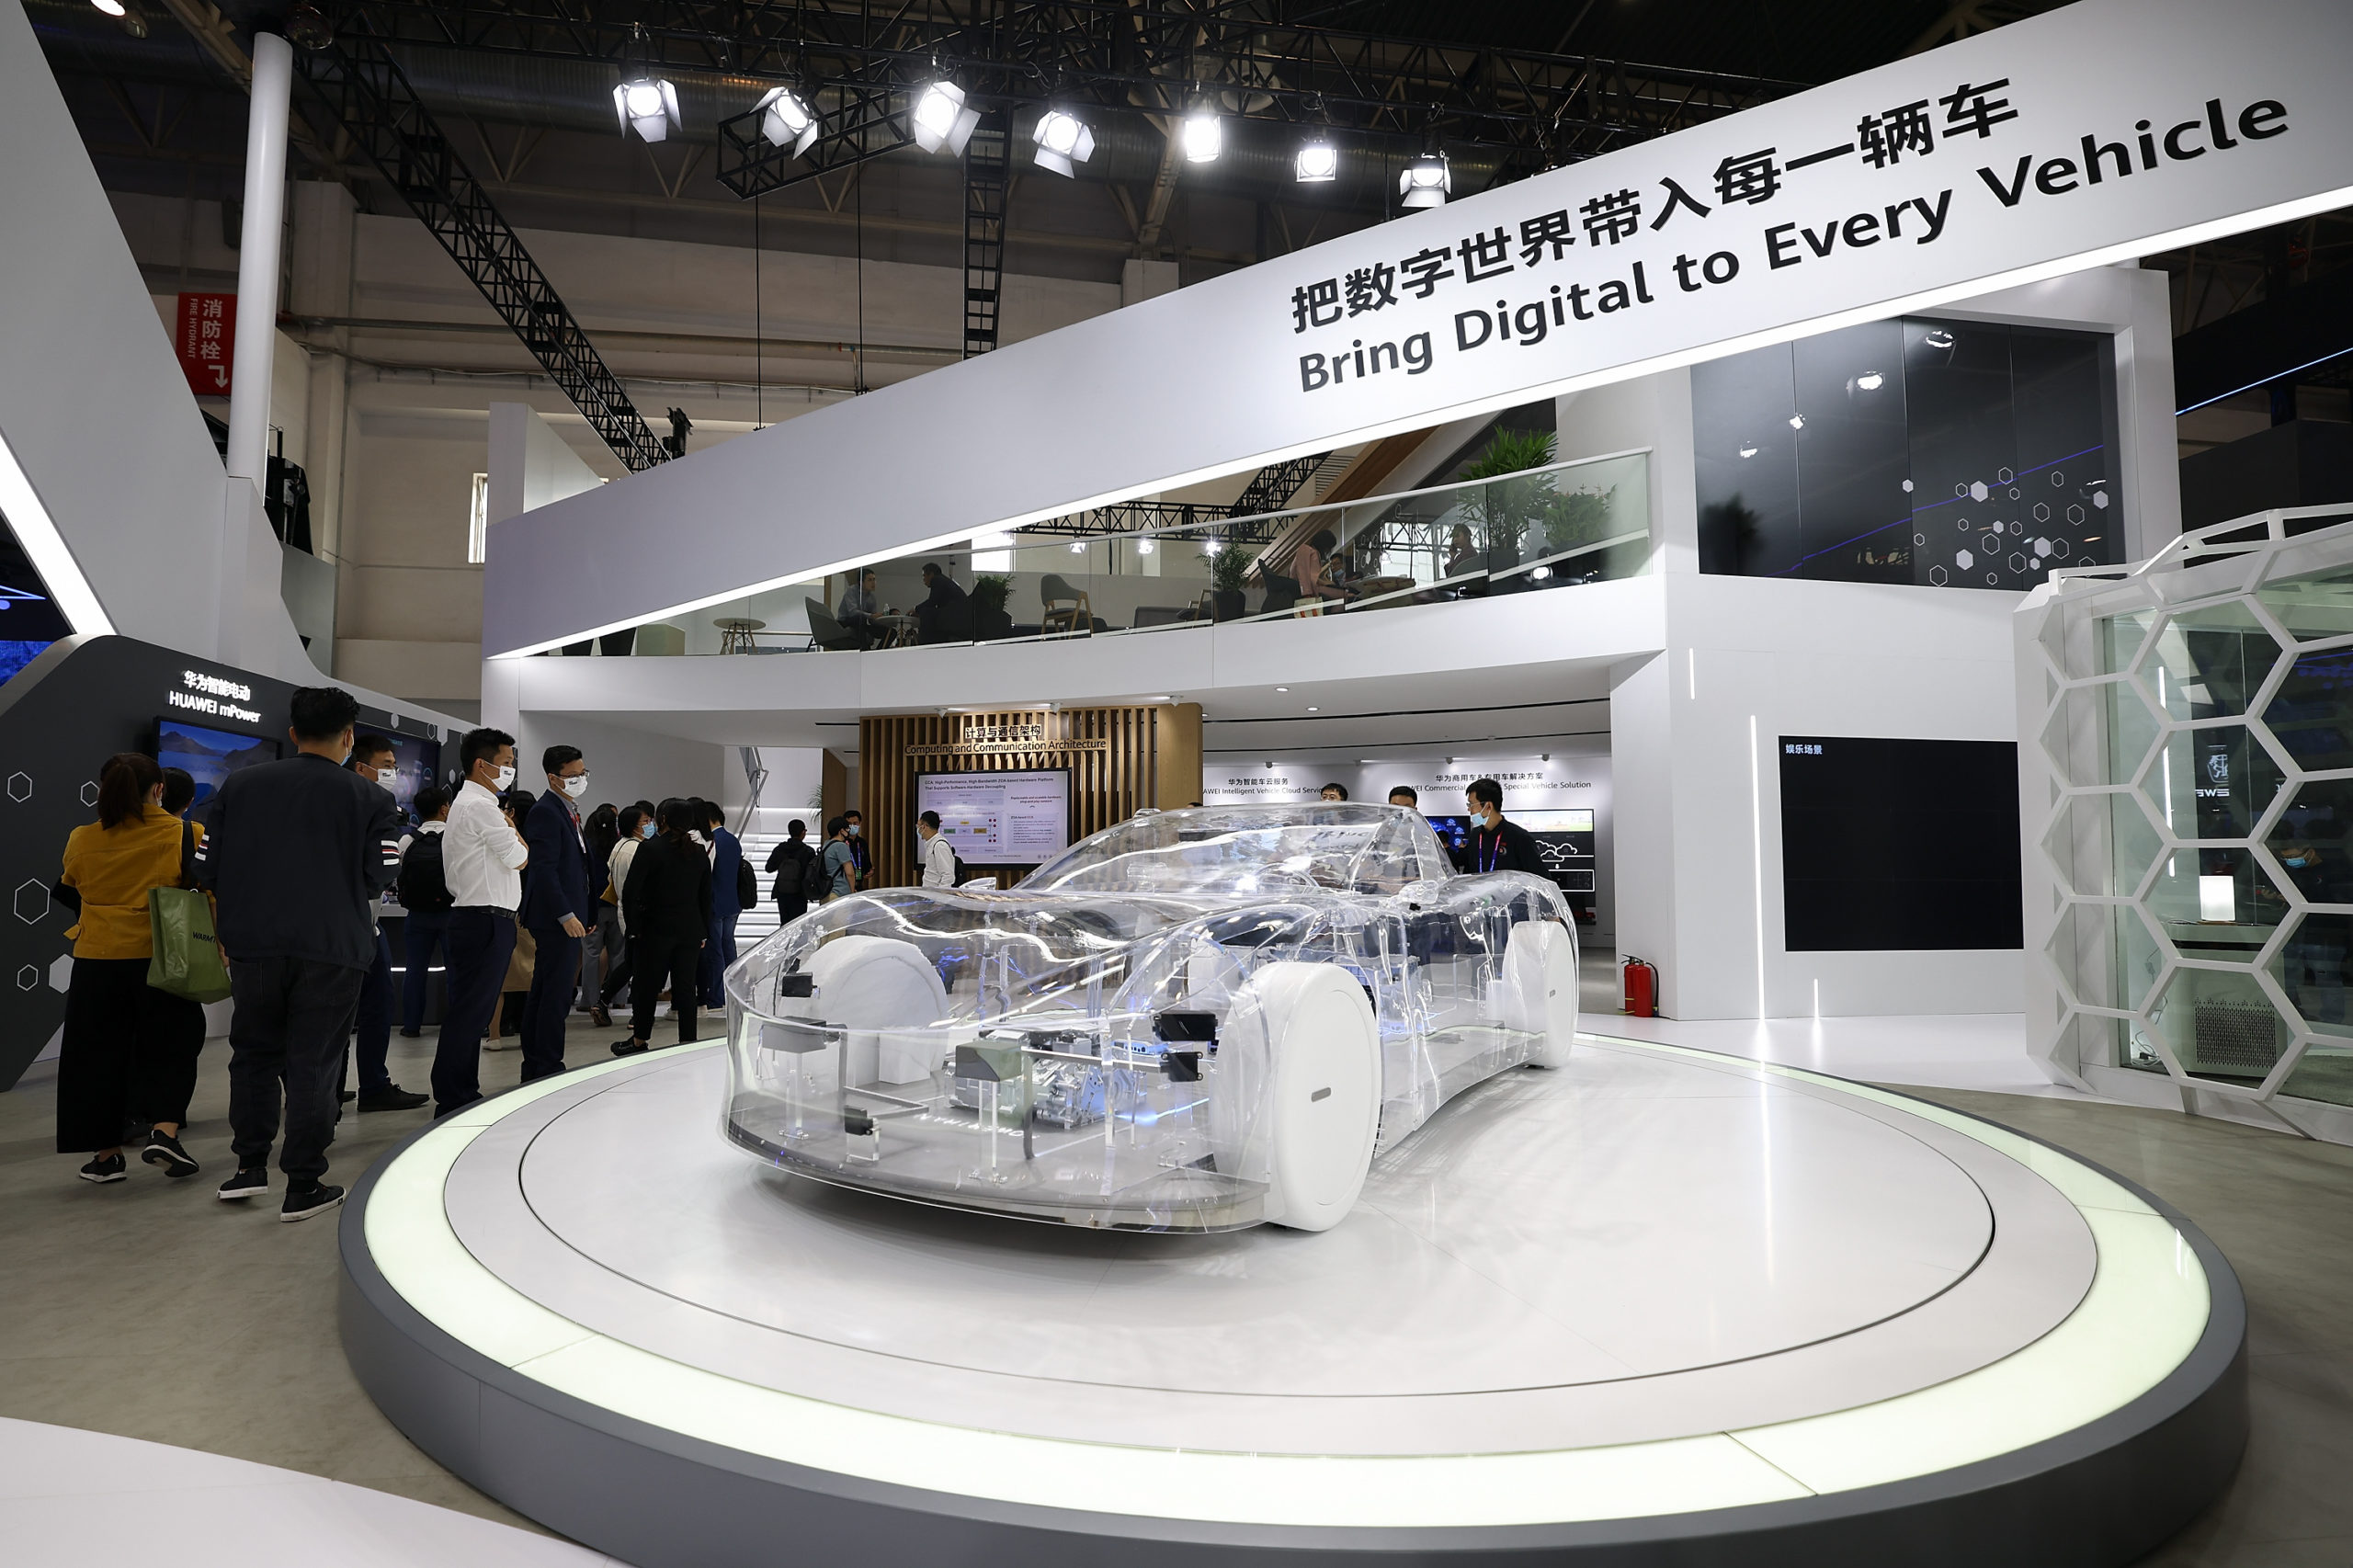 BEIJING, CHINA - SEPTEMBER 27: A transparent model car is on display at Huawei booth during 2020 Beijing International Automotive Exhibition at China International Exhibition Center on September 27, 2020 in Beijing, China. (Photo by Lintao Zhang/Getty Images)